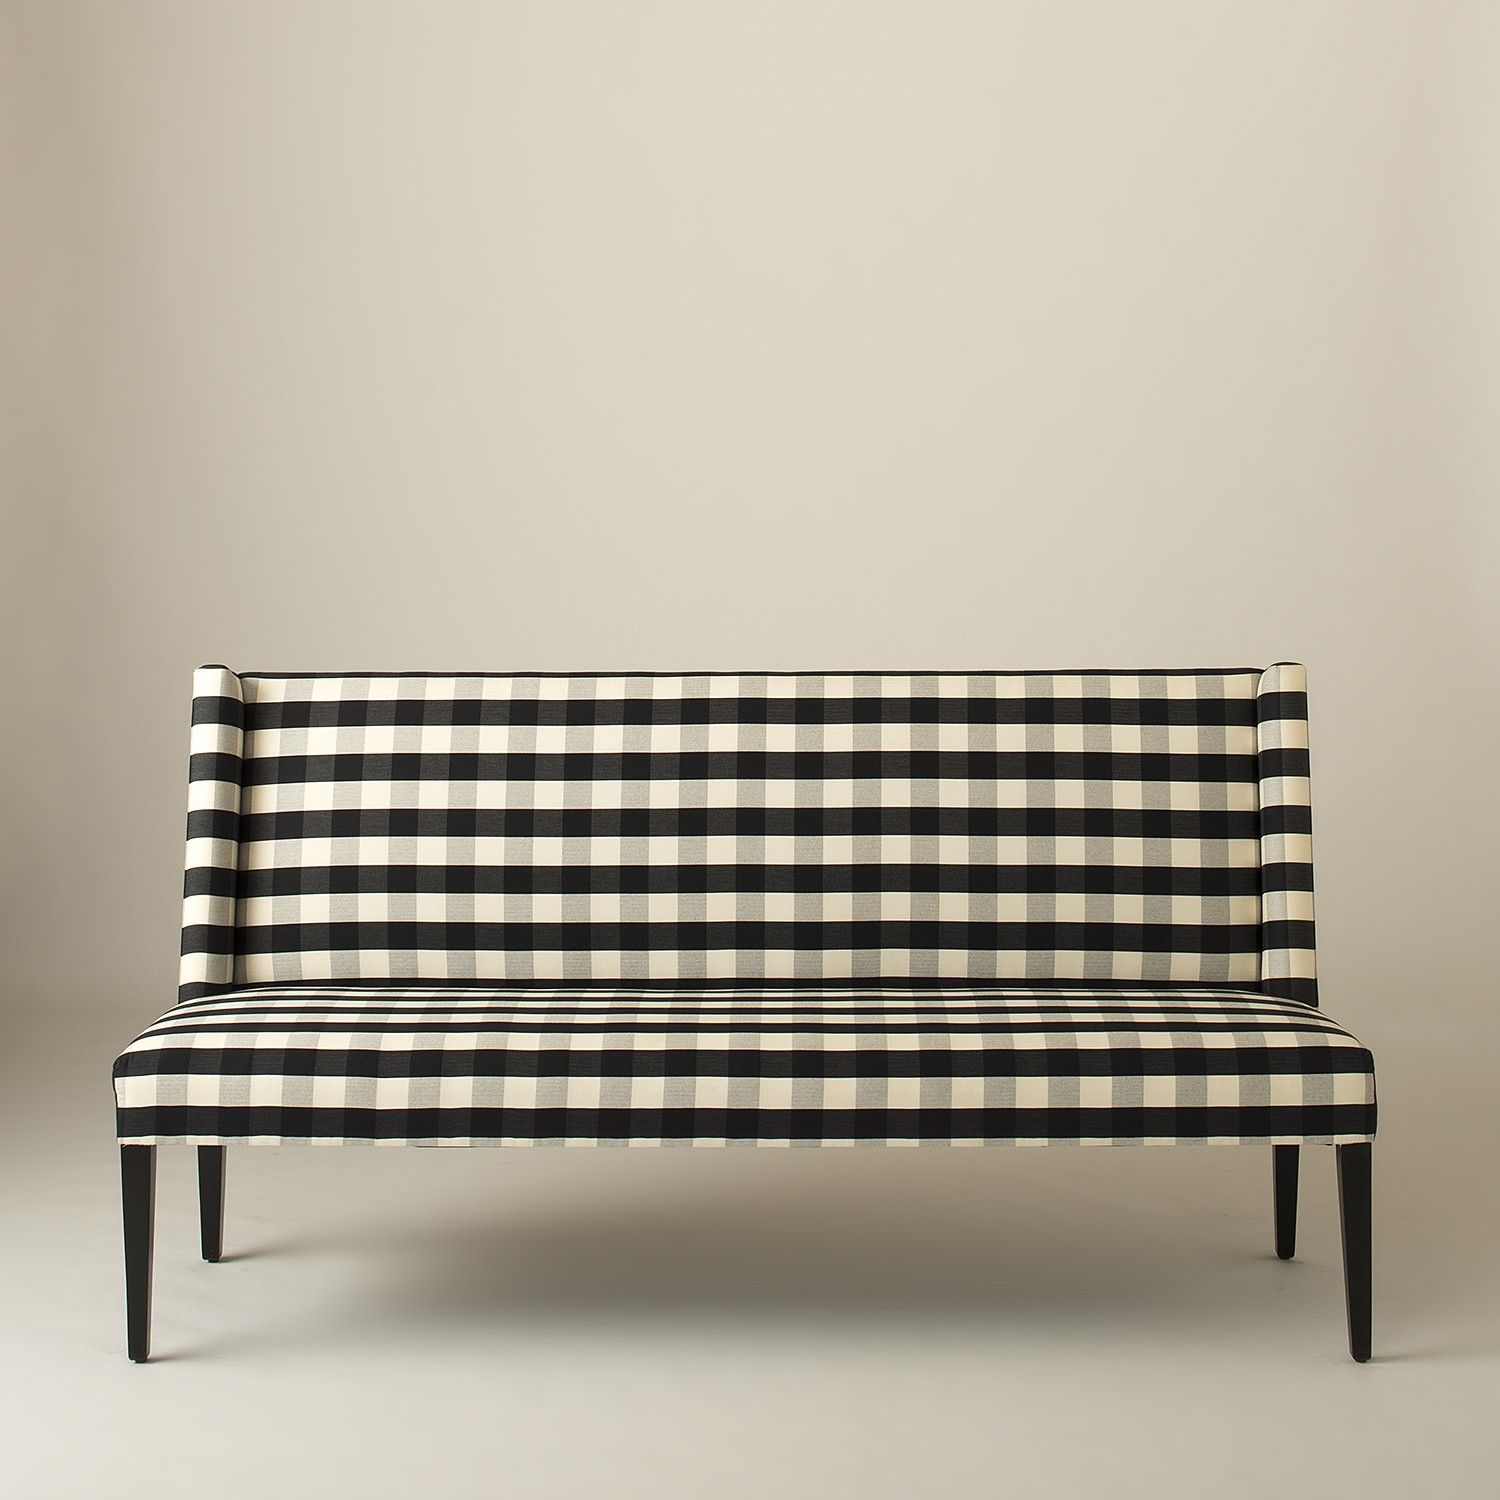 Lenox Bench Windowpane Plaid Upholstered Dining Bench Dining Bench With Back Upholstered Bench